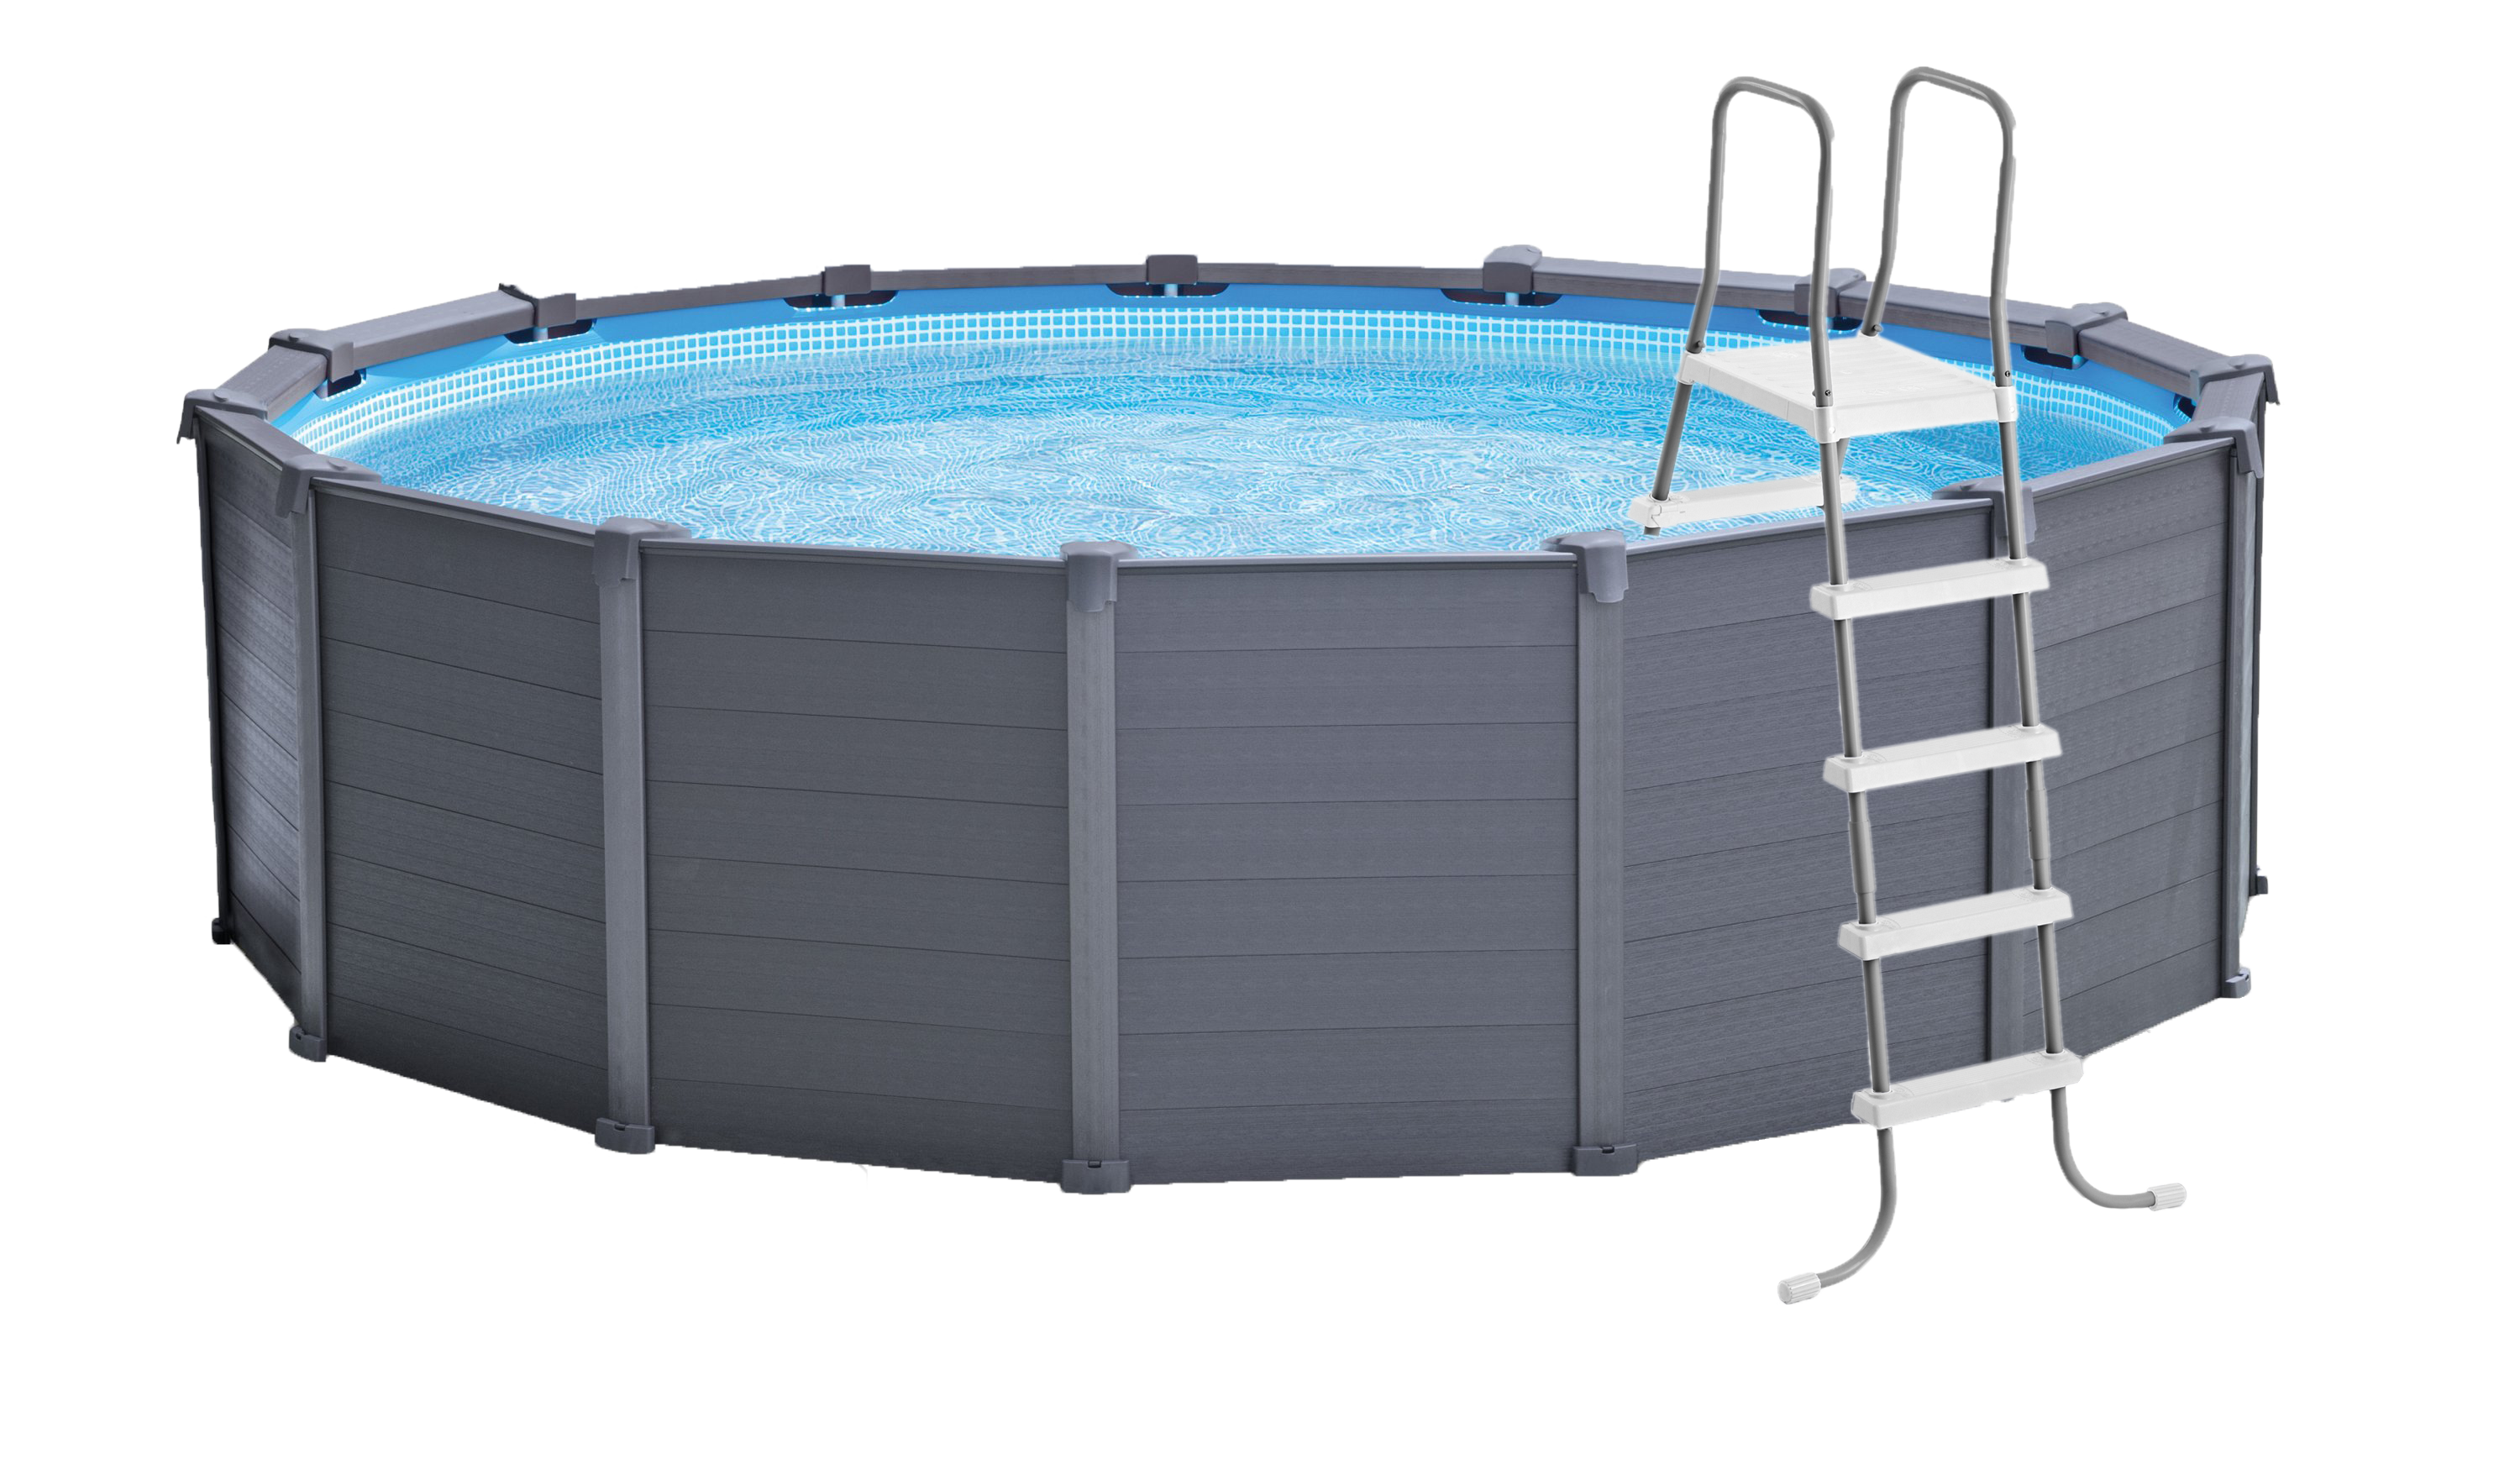 Ultra frame round pool png. Sequoia graphite panel pools